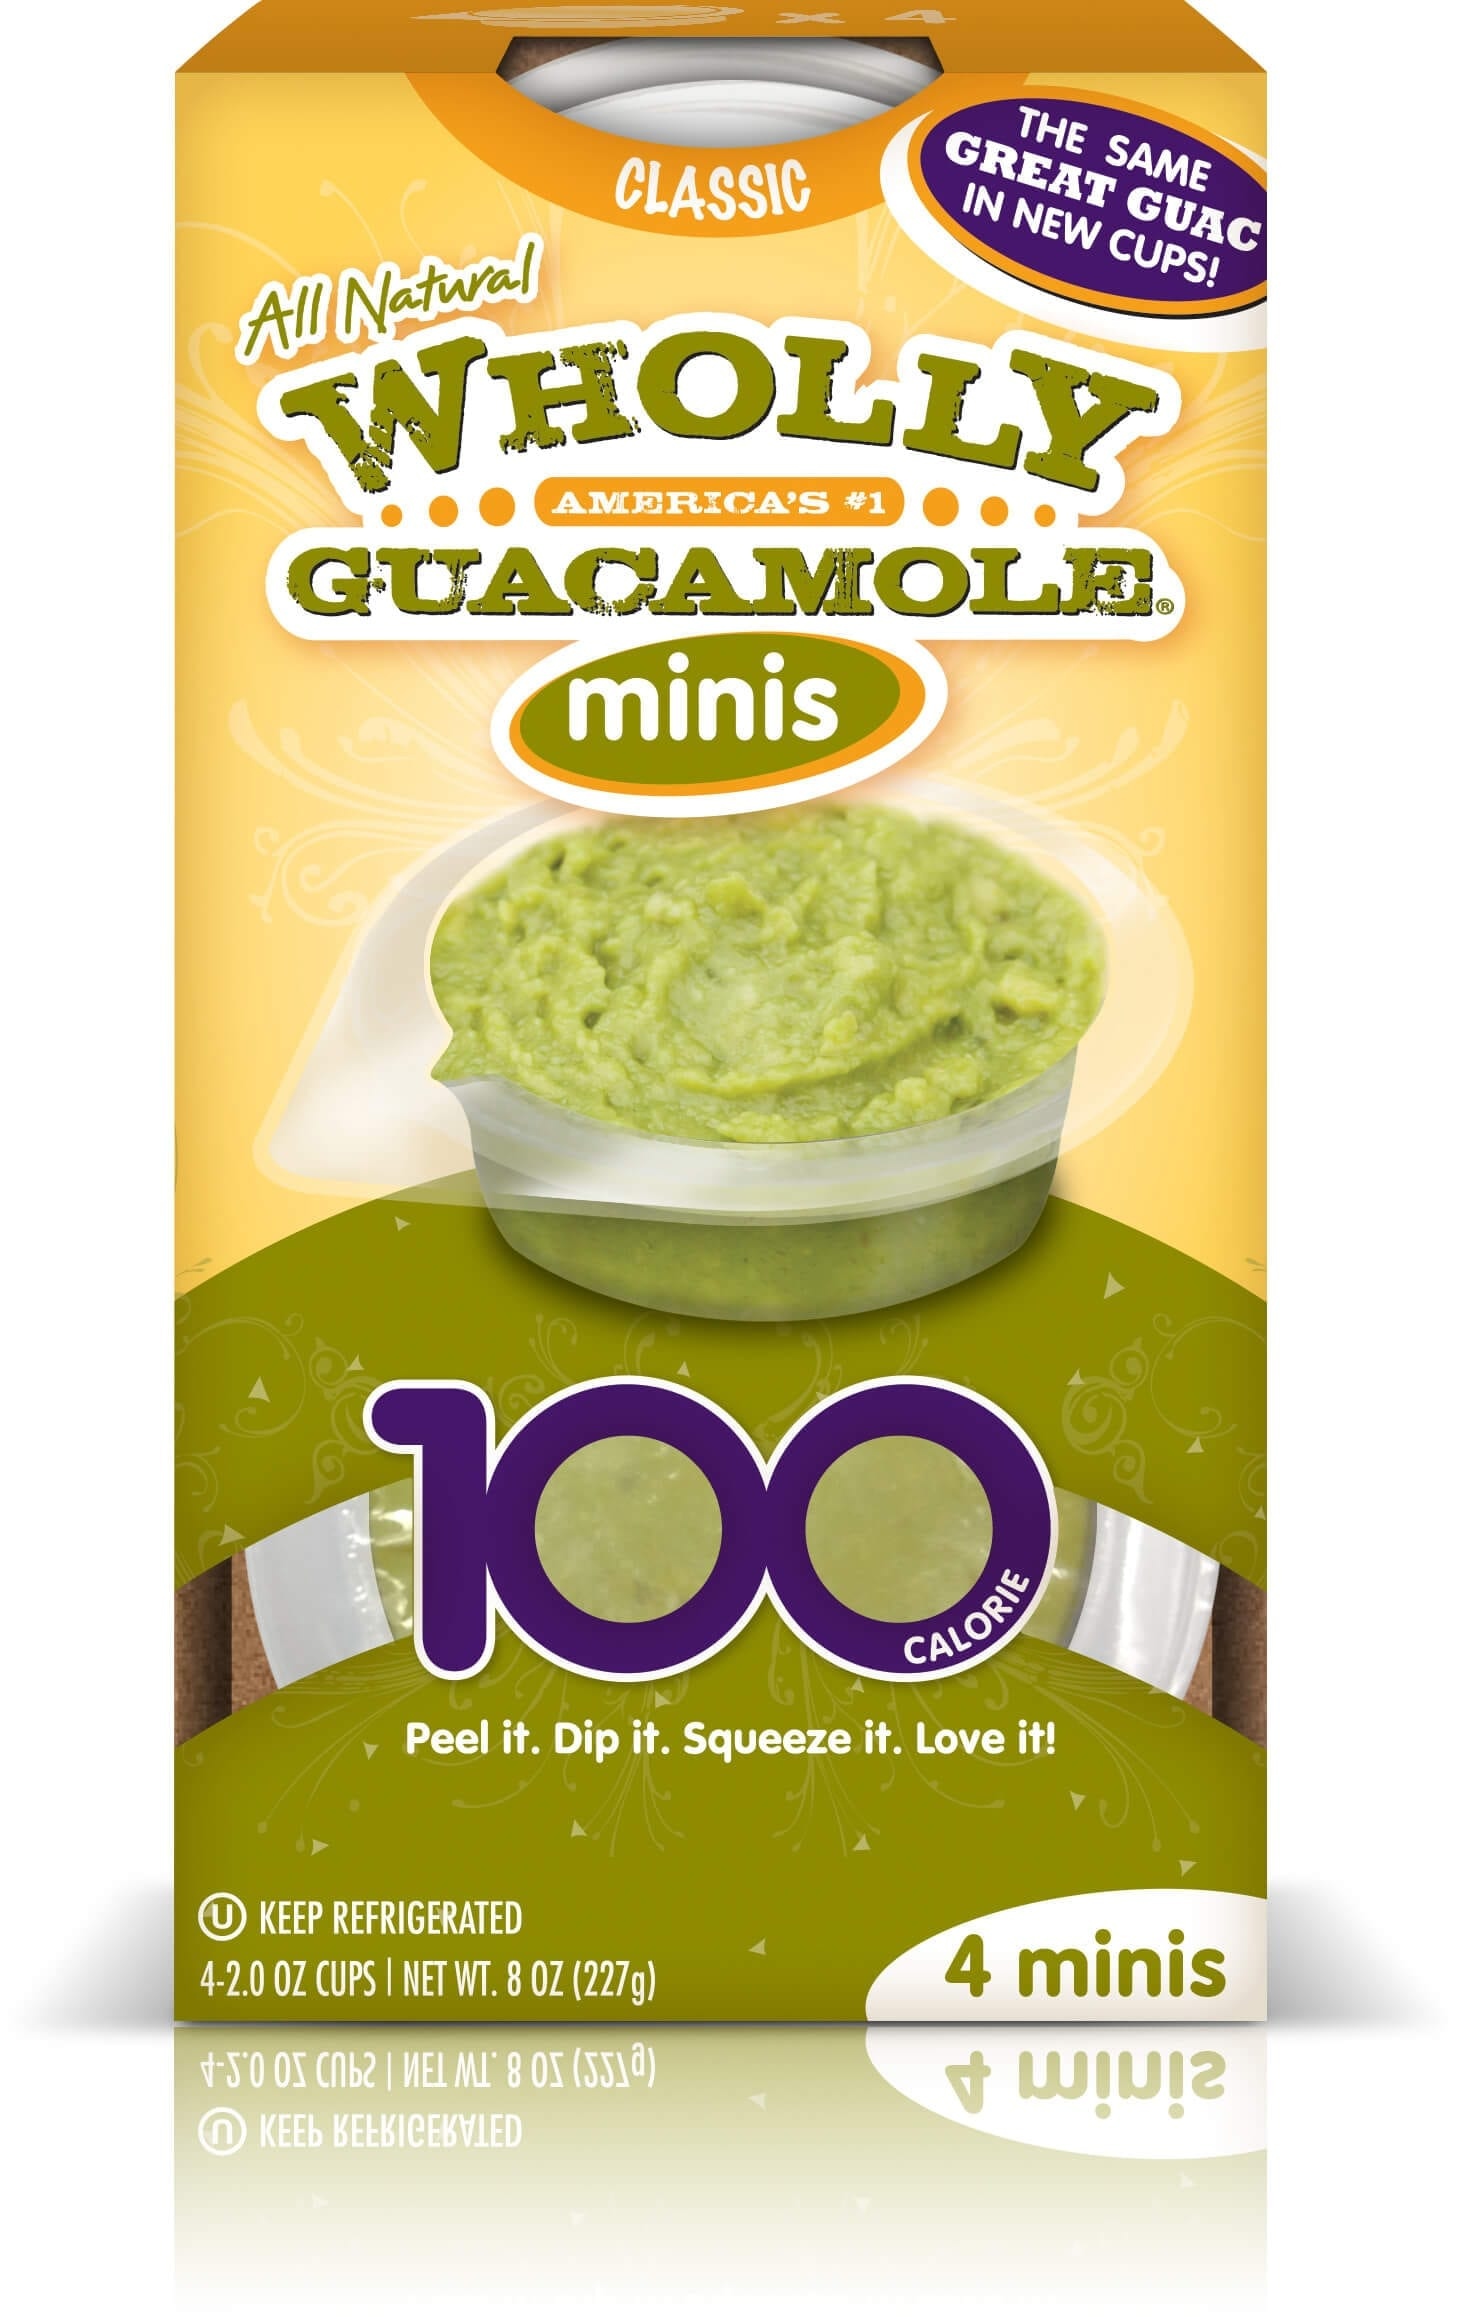 wholly guacamole avocado healthier snacks for the office